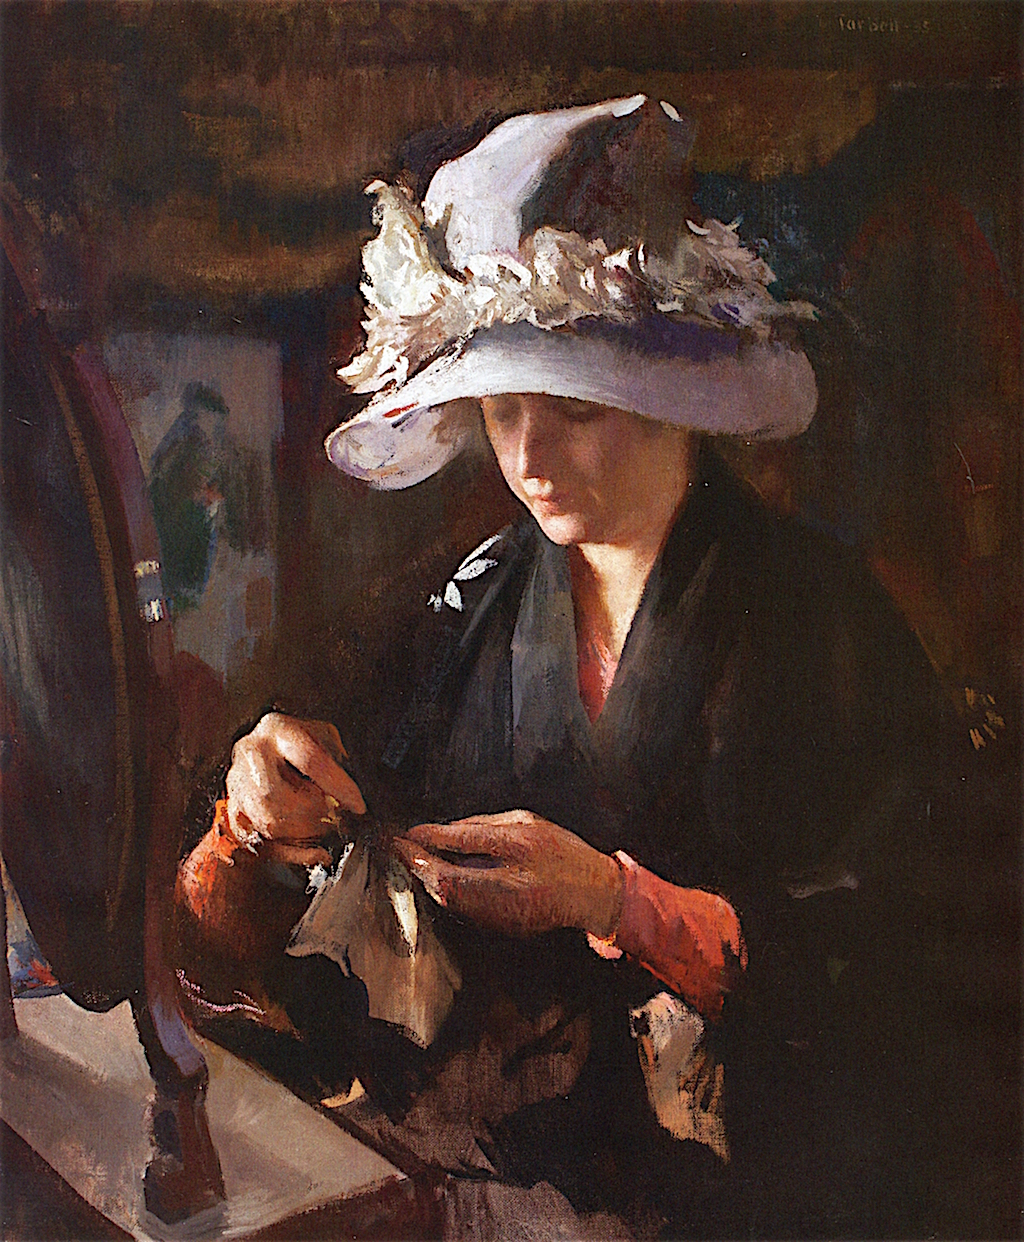 Edmund Tarbell, Woman Mending a Glove, 1935